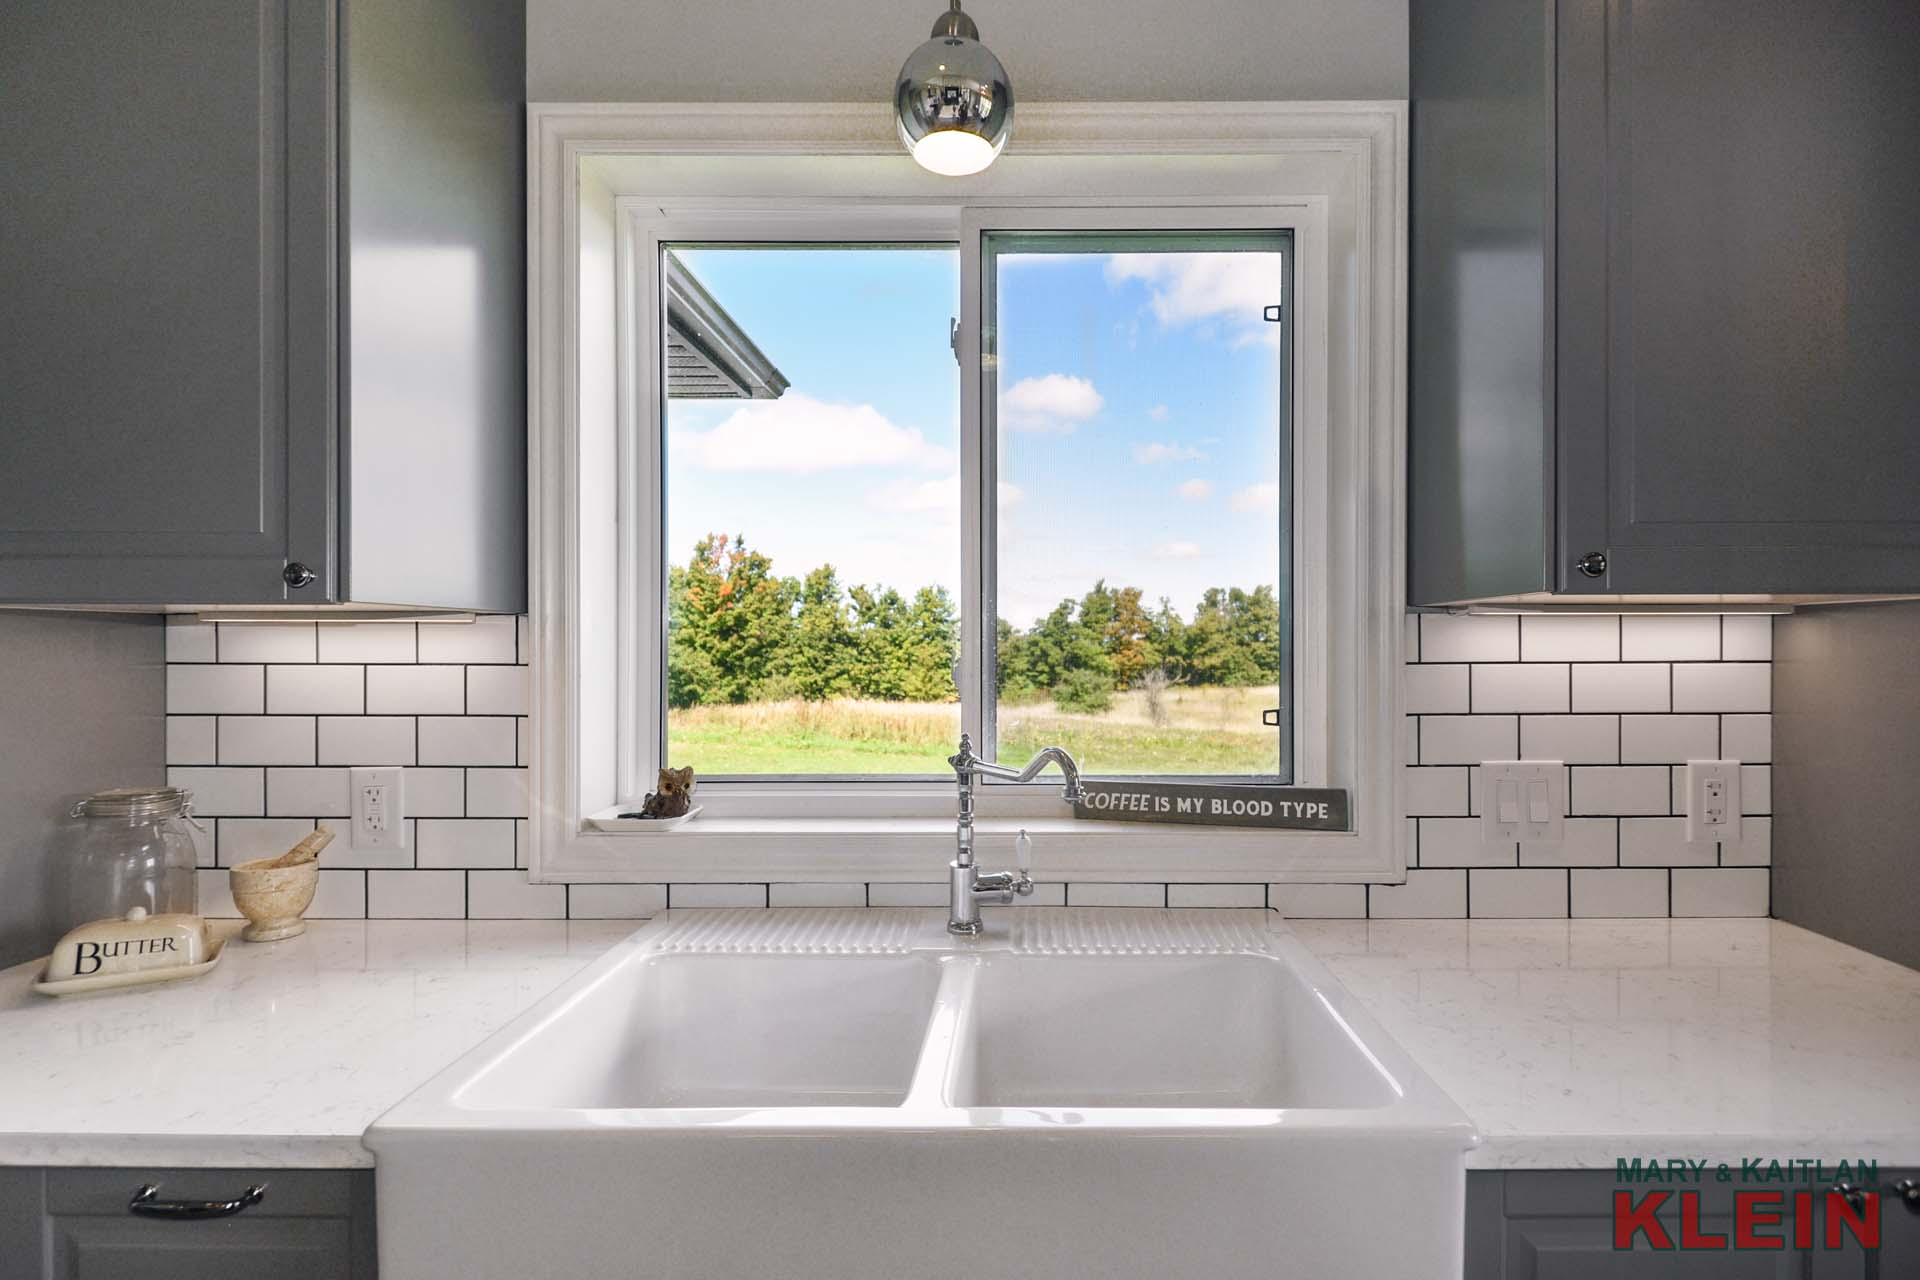 double farmer's sink, Quartz counter tops